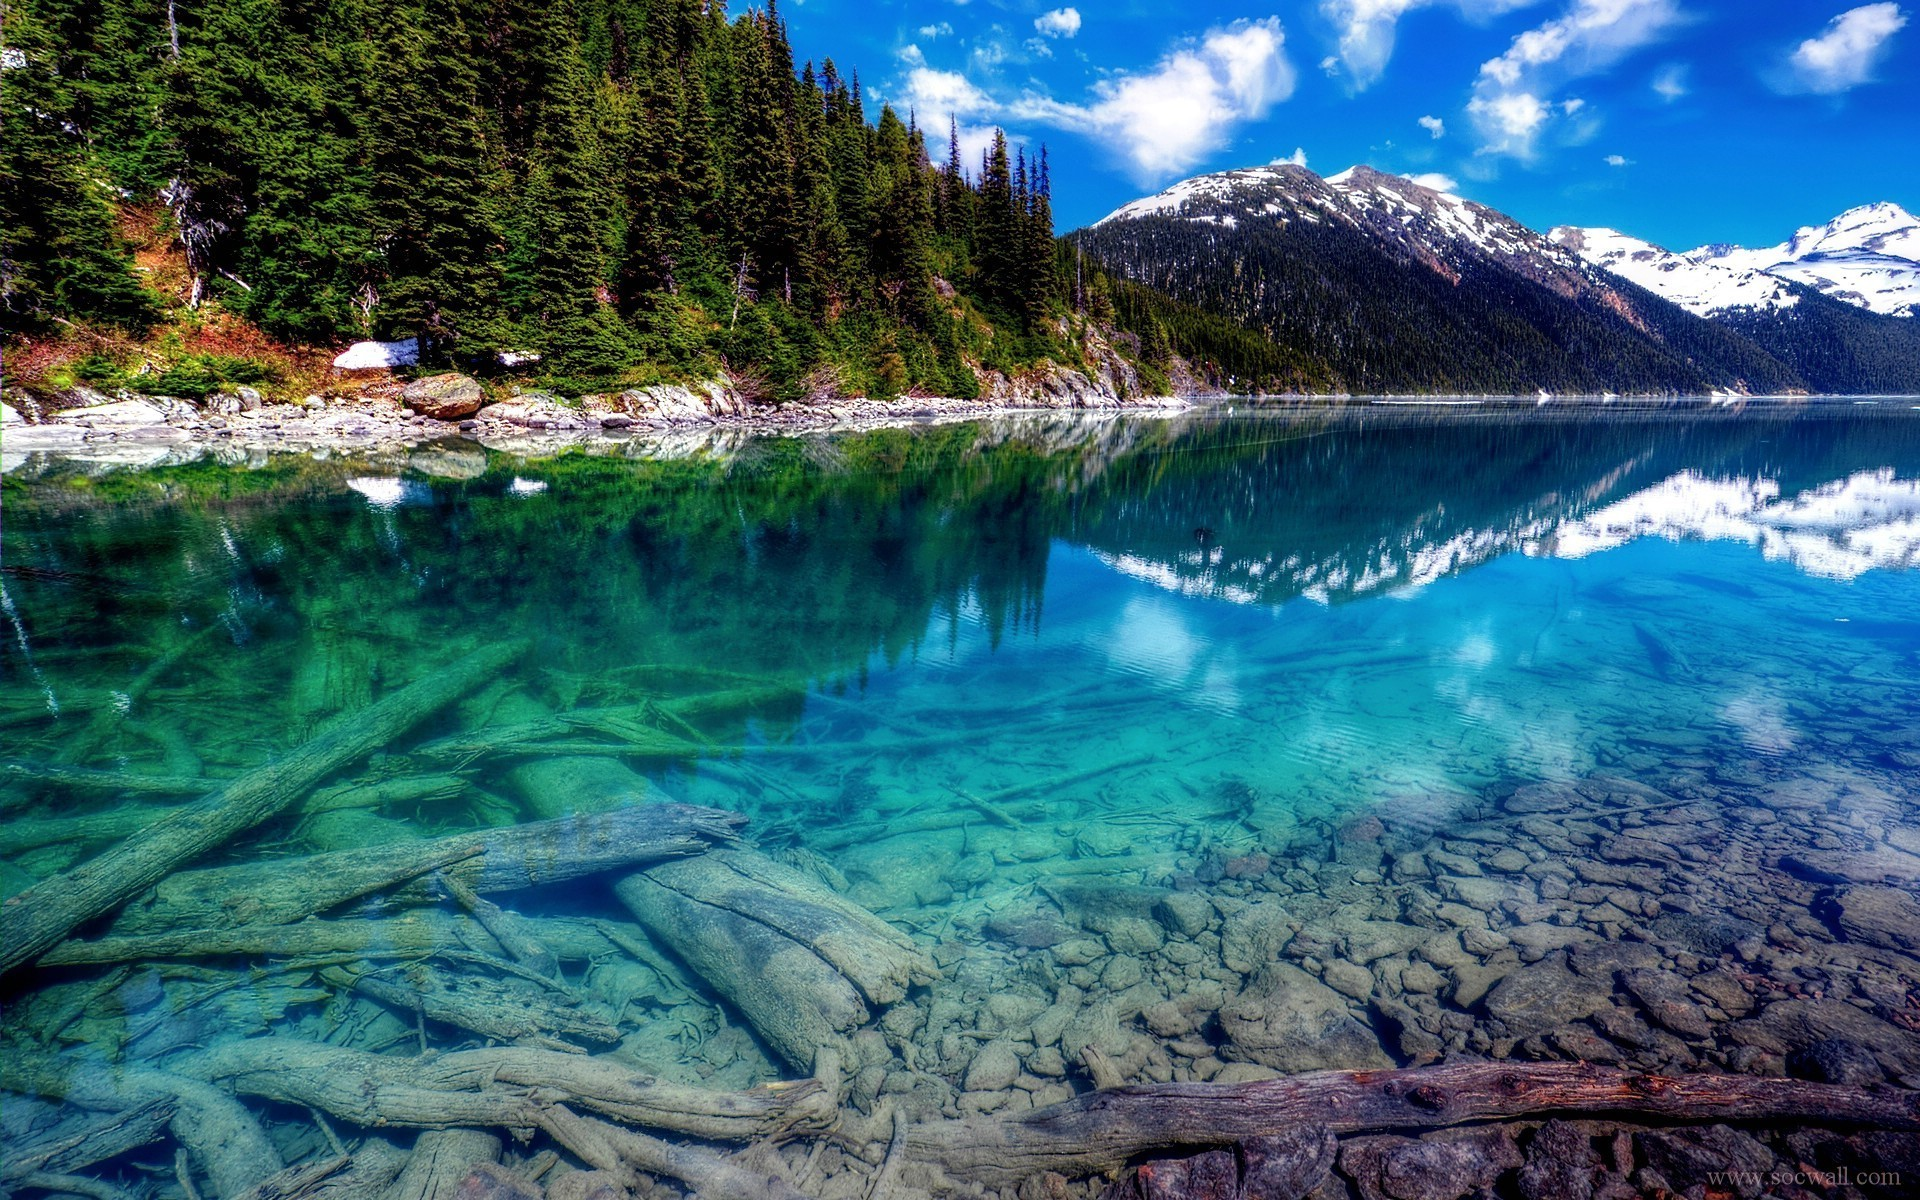 4k ultra hd nature wallpapers,natural landscape,nature,body of water,mountain,reflection